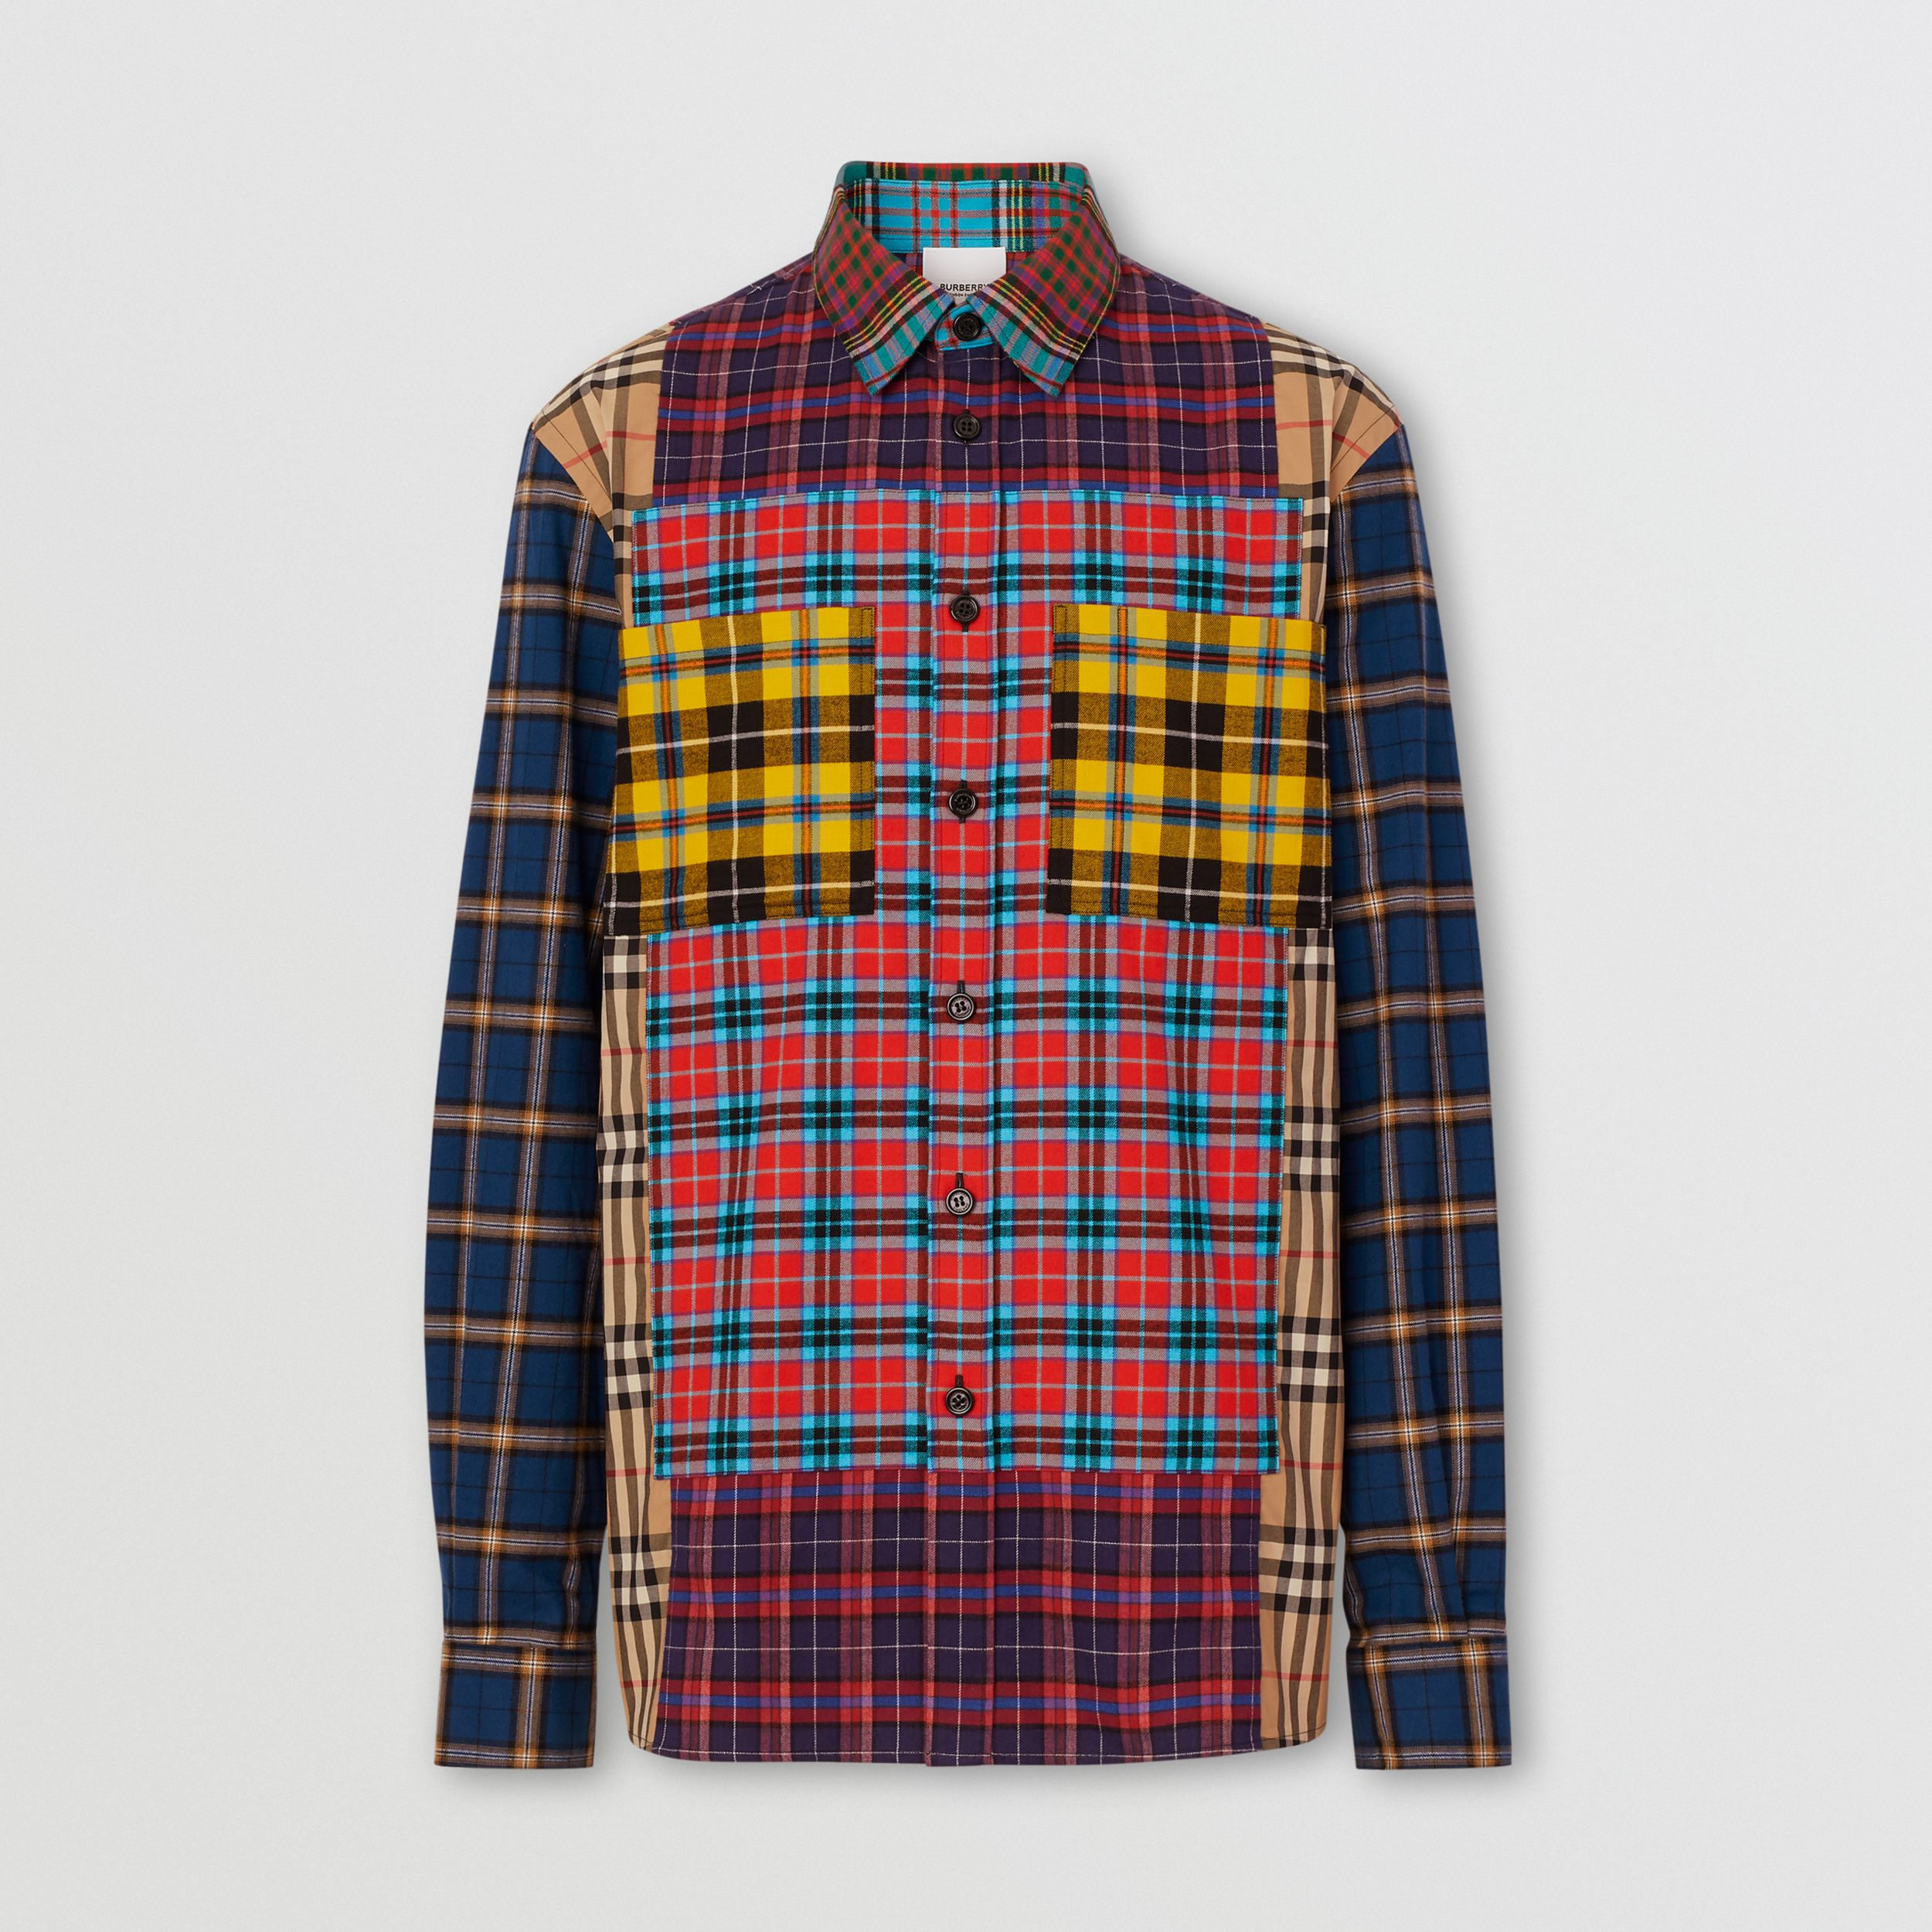 Patchwork Check Cotton Oversized Shirt in Navy - Men | Burberry - 4